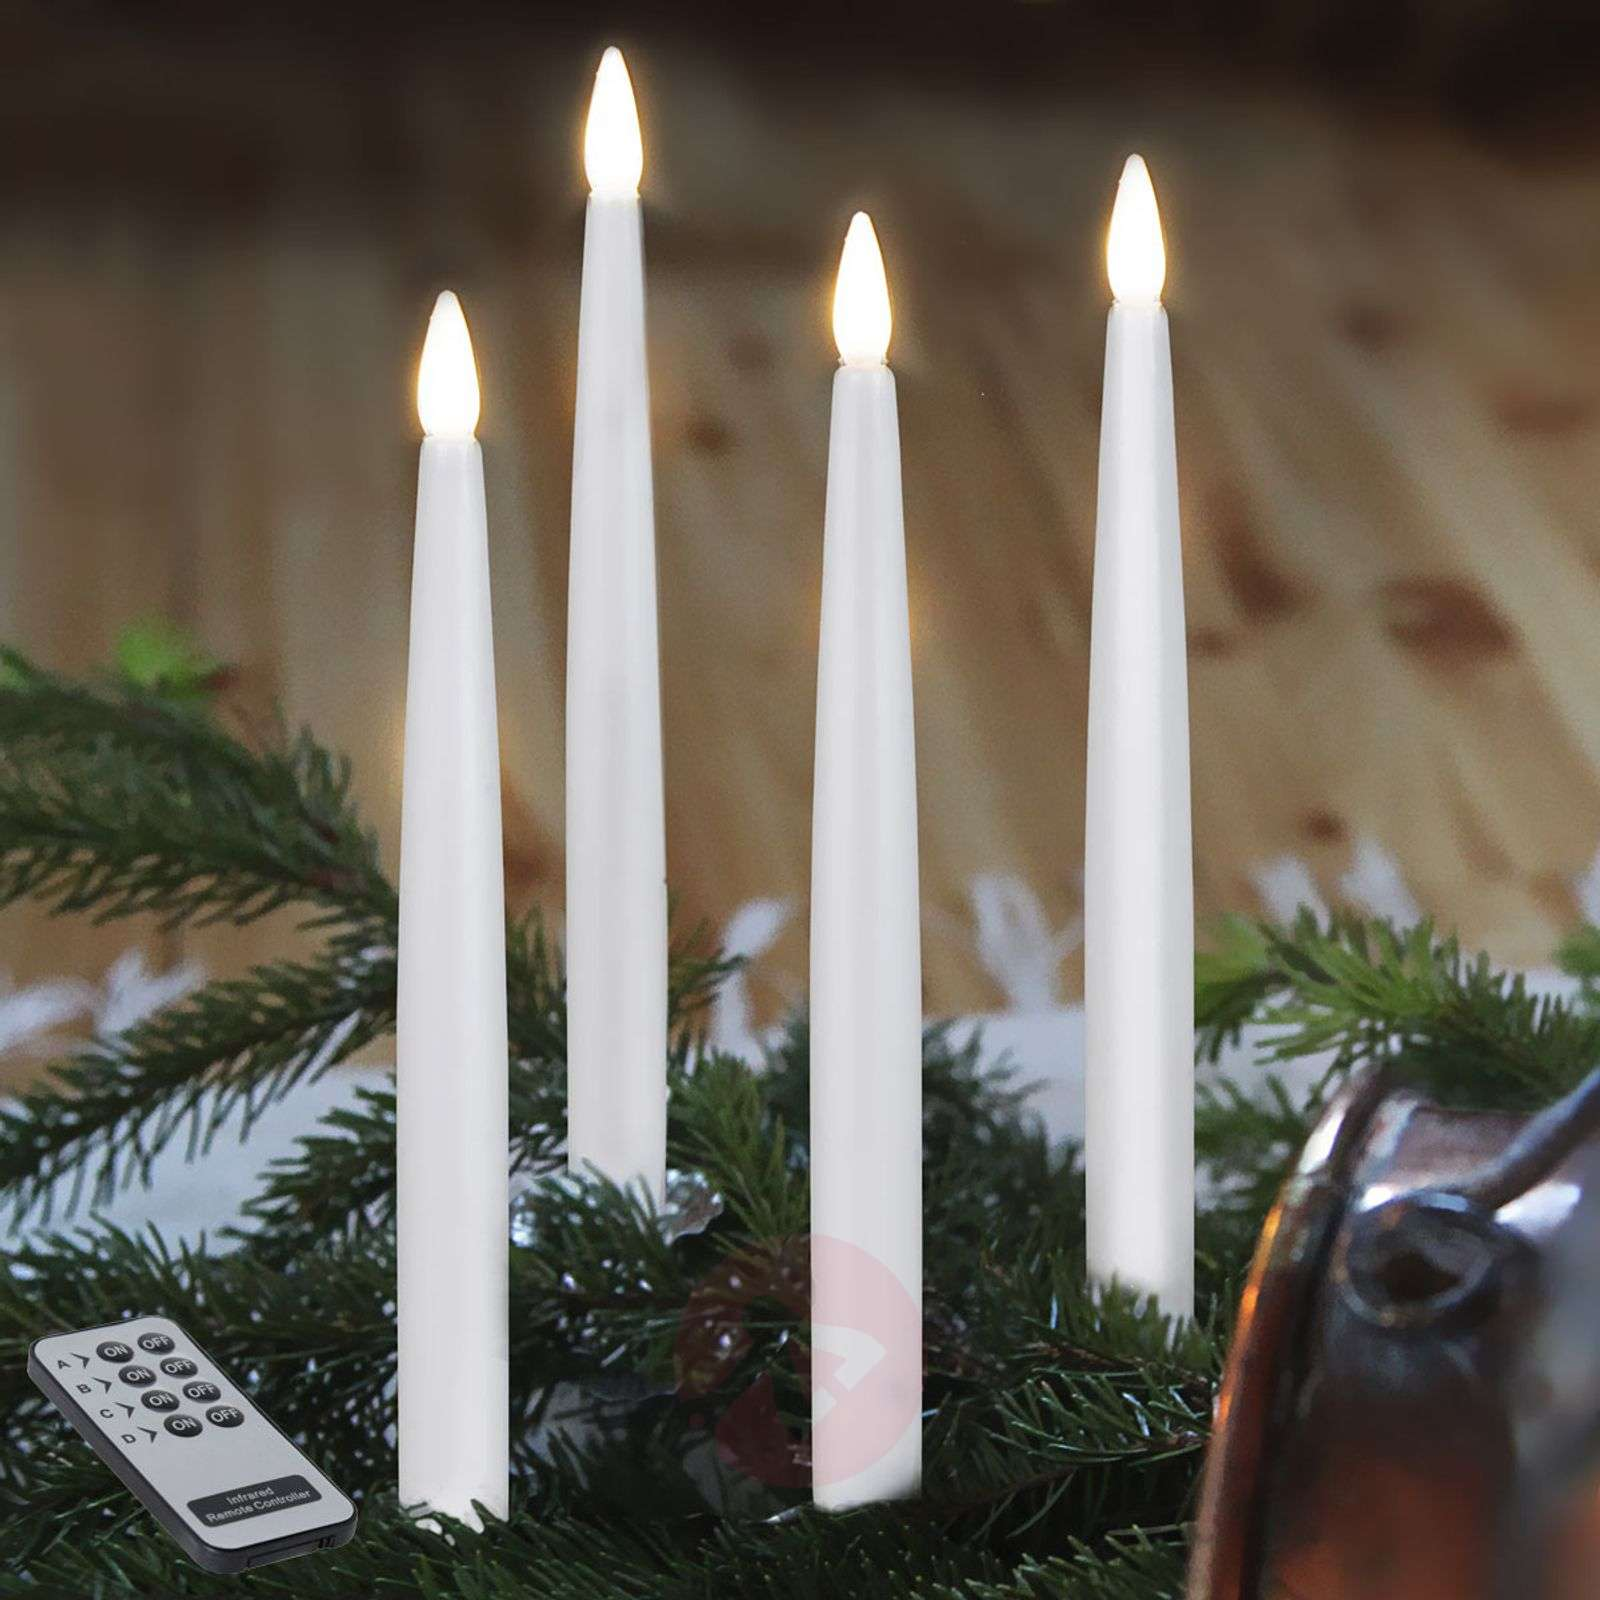 Long LED Christmas candles, set of 4, indoors-1522065-03